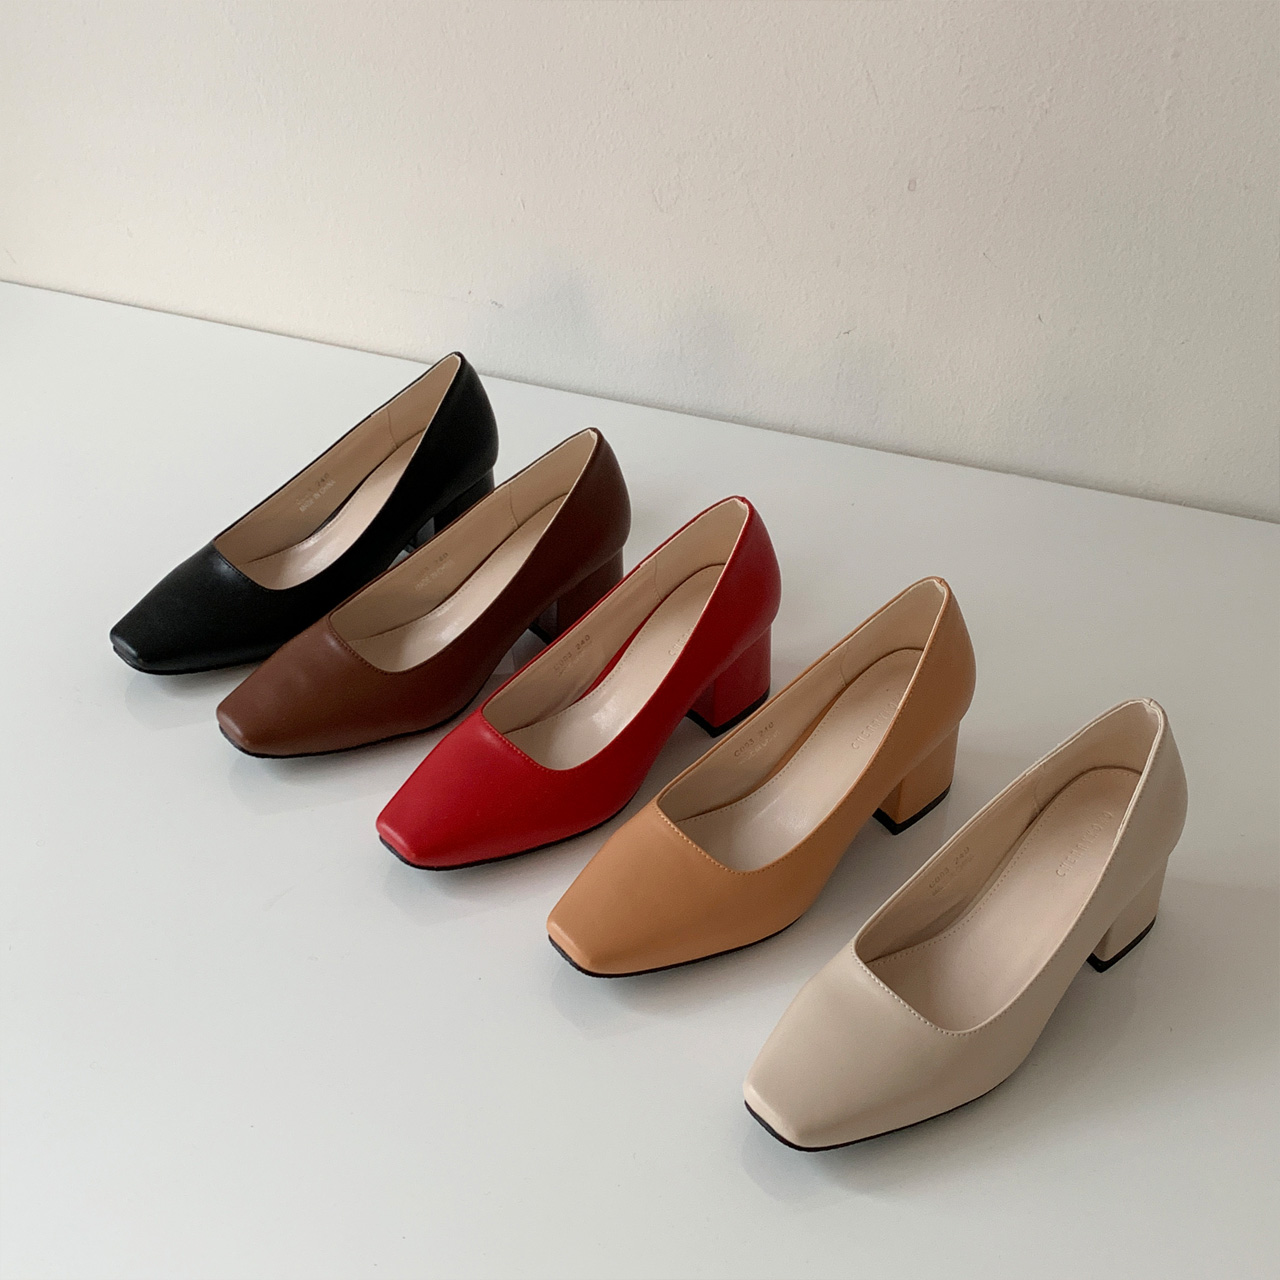 Basic Middle heel shoes